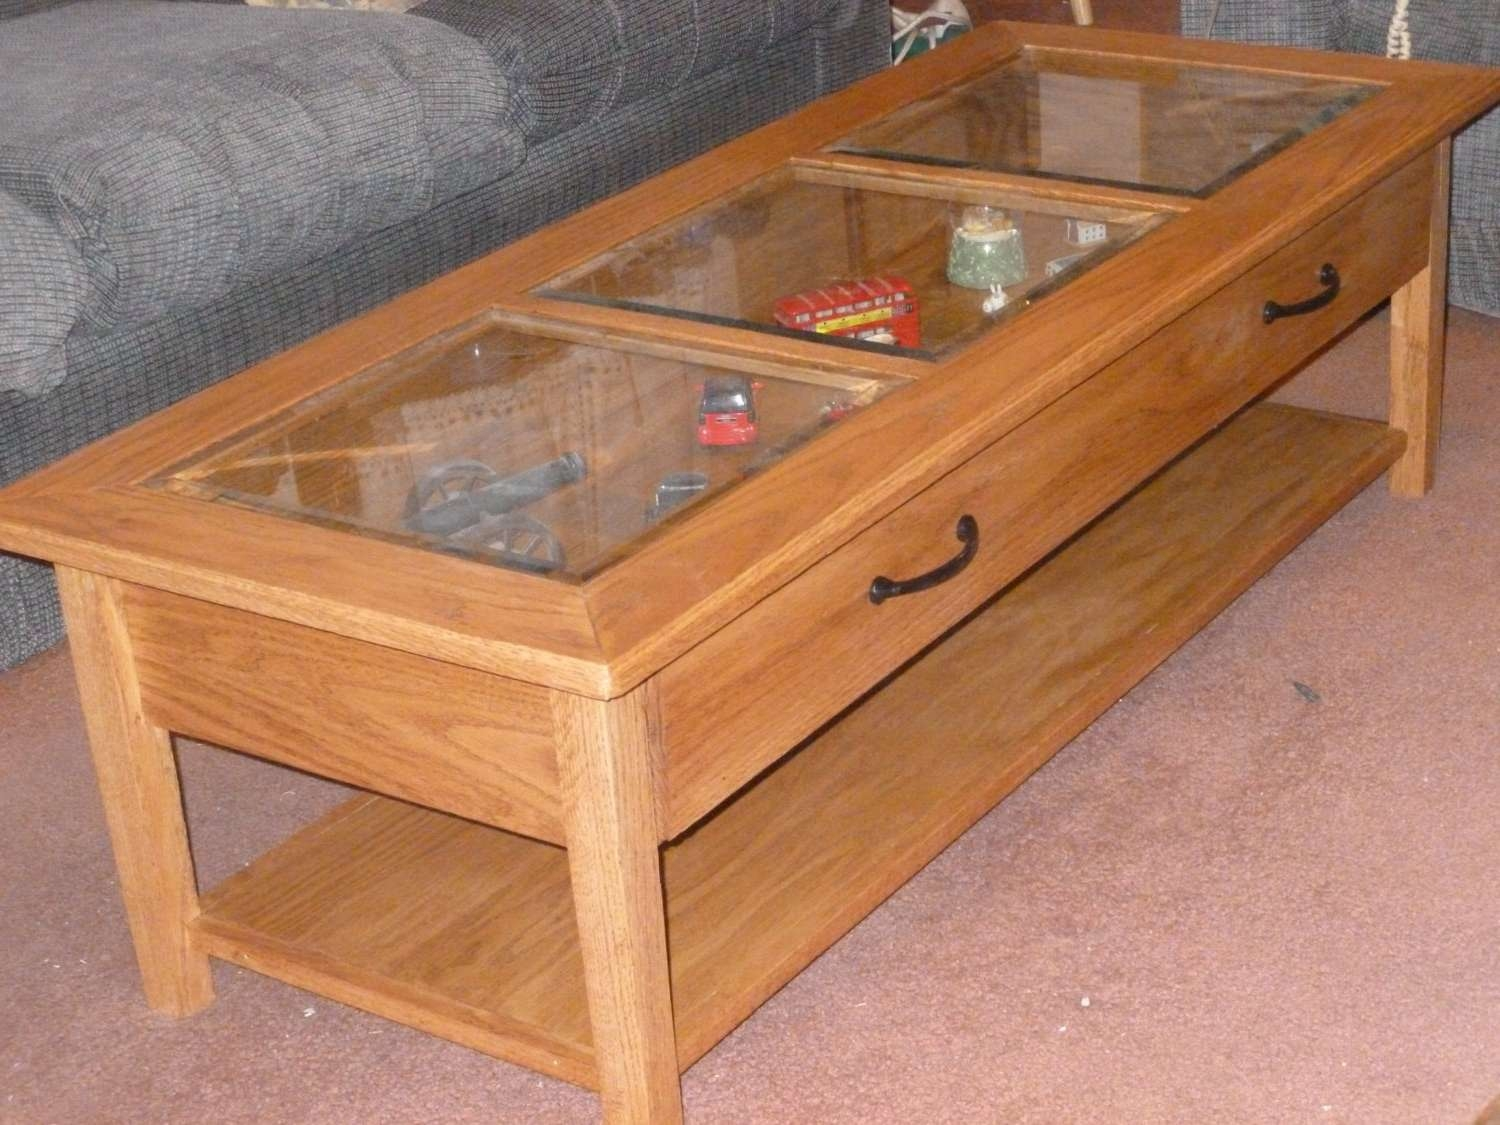 Glass Coffee Tables: Appealing Glass Topped Coffee Table Display With Regard To Most Popular Glass Coffee Tables With Storage (View 13 of 20)